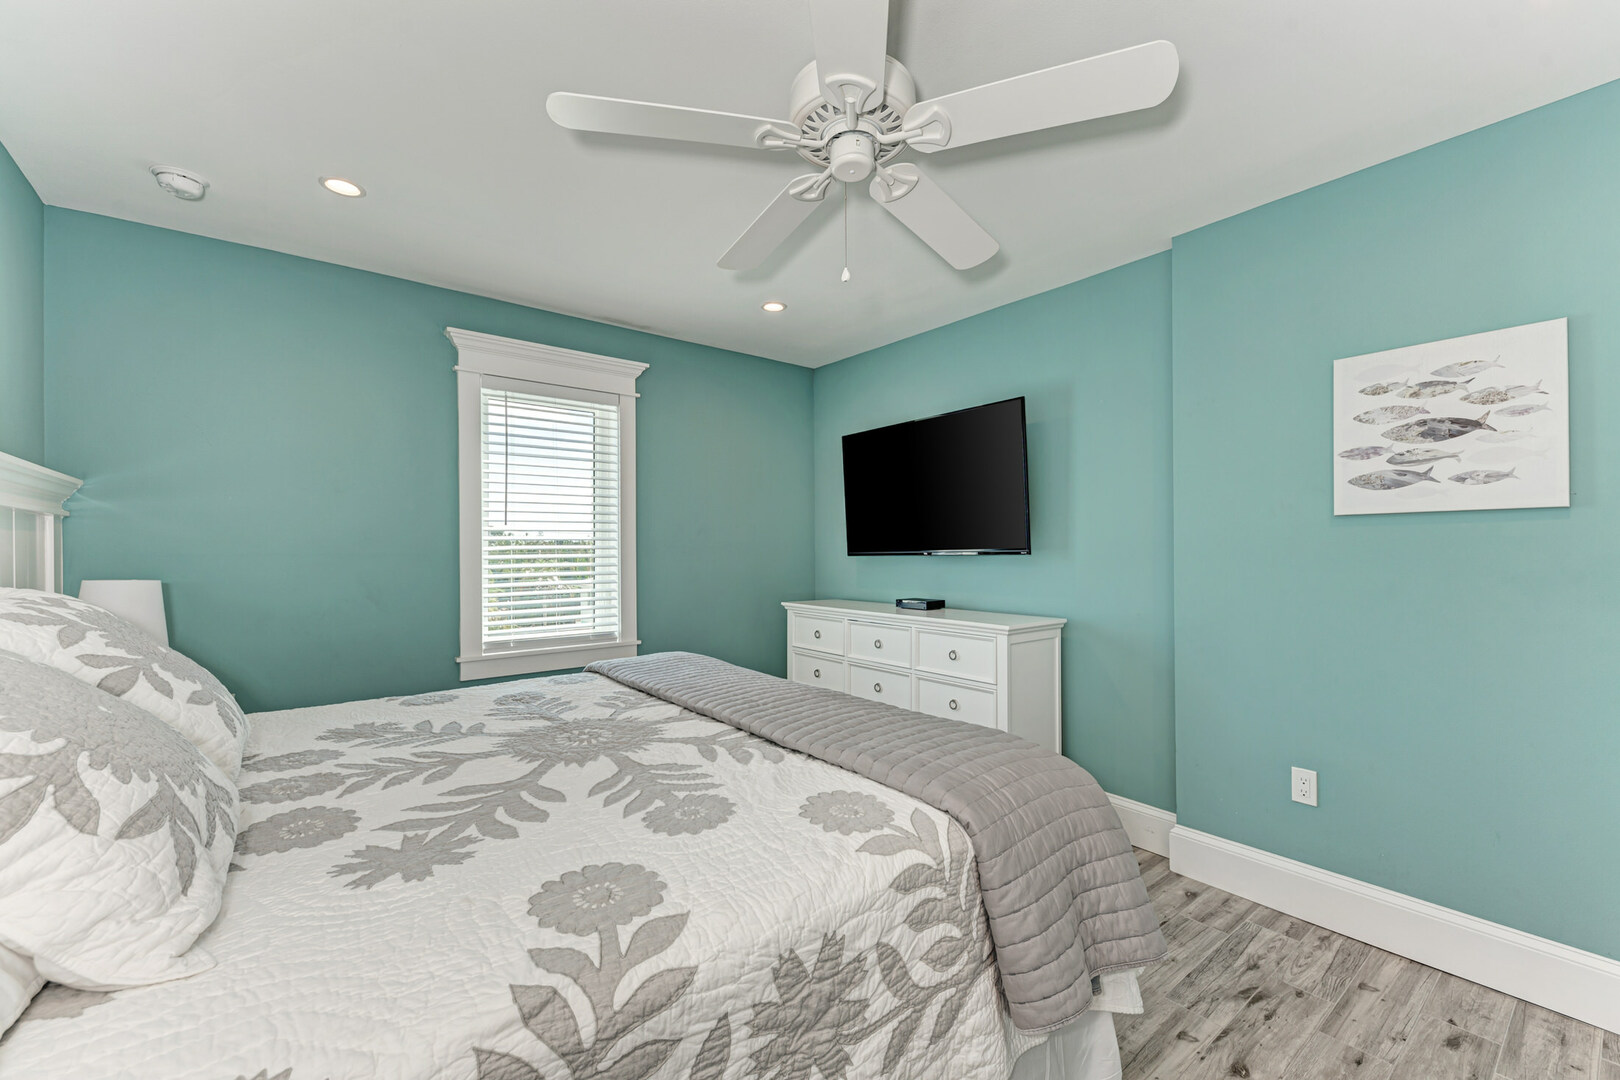 4 Sandpipers 3rd bedroom with ensuite alternate view